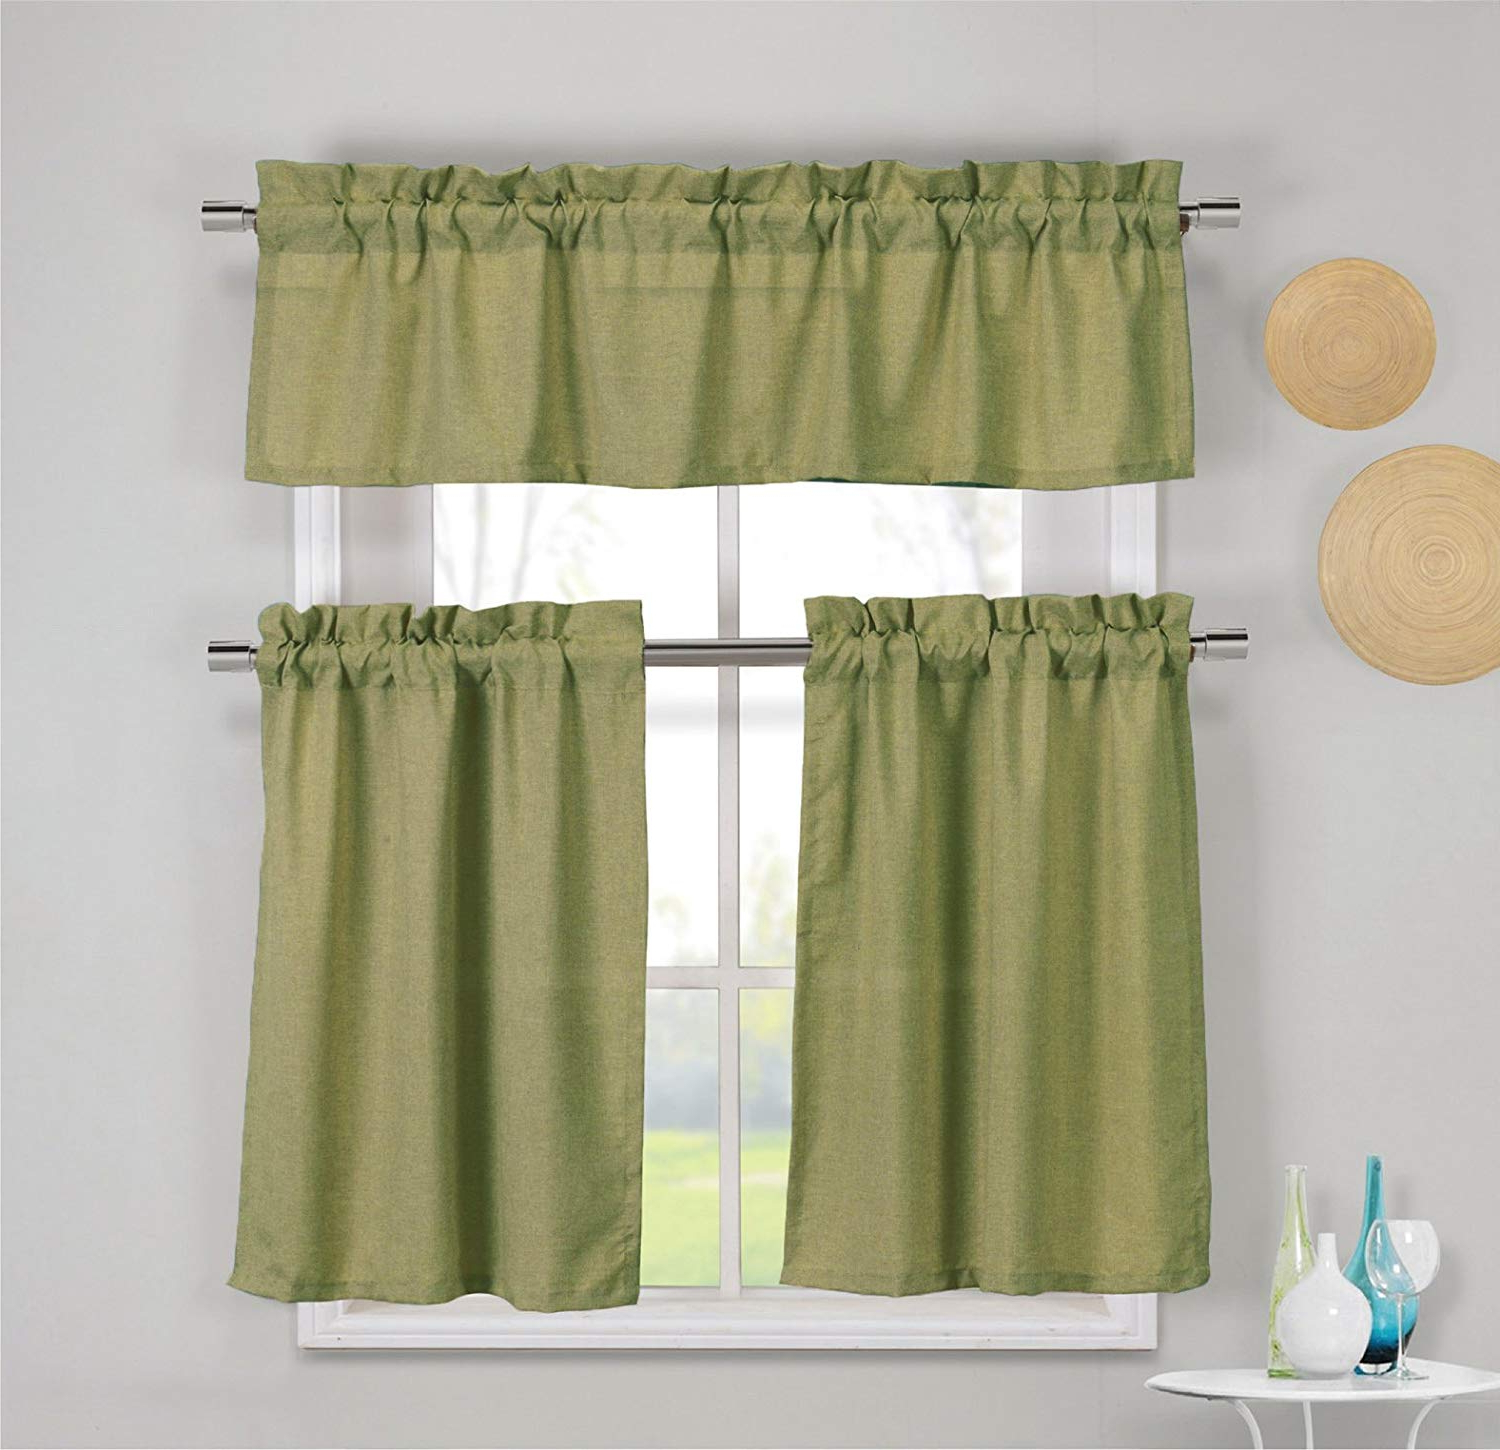 Most Current Solid Microfiber 3 Piece Kitchen Curtain Valance And Tiers Sets Regarding 3 Piece Faux Cotton Kitchen Window Curtain Panel Set With 1 Valance And 2  Tier Panel Curtains (Espresso Brown) (Gallery 2 of 20)